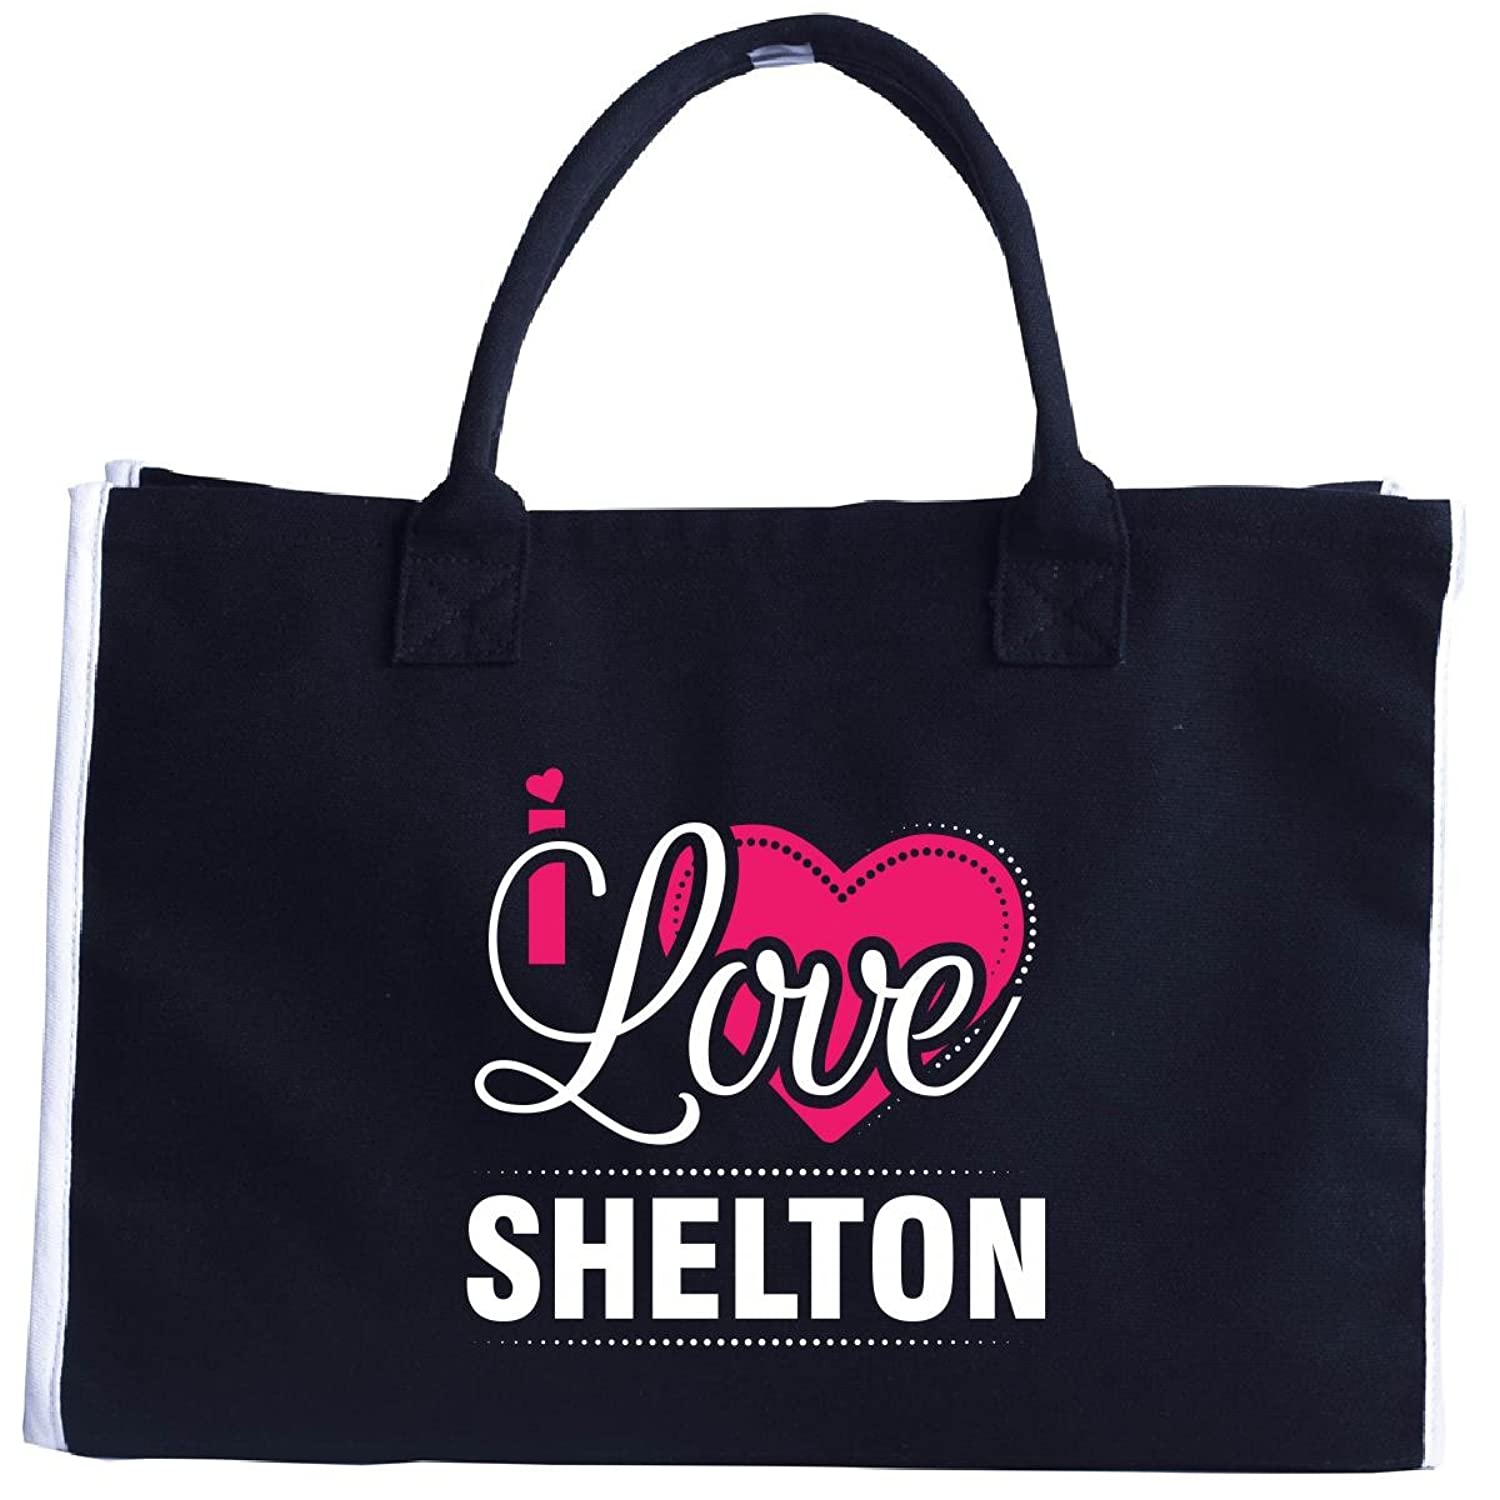 I Love Shelton - Cool Gift For Shelton From Girlfriend - Tote Bag